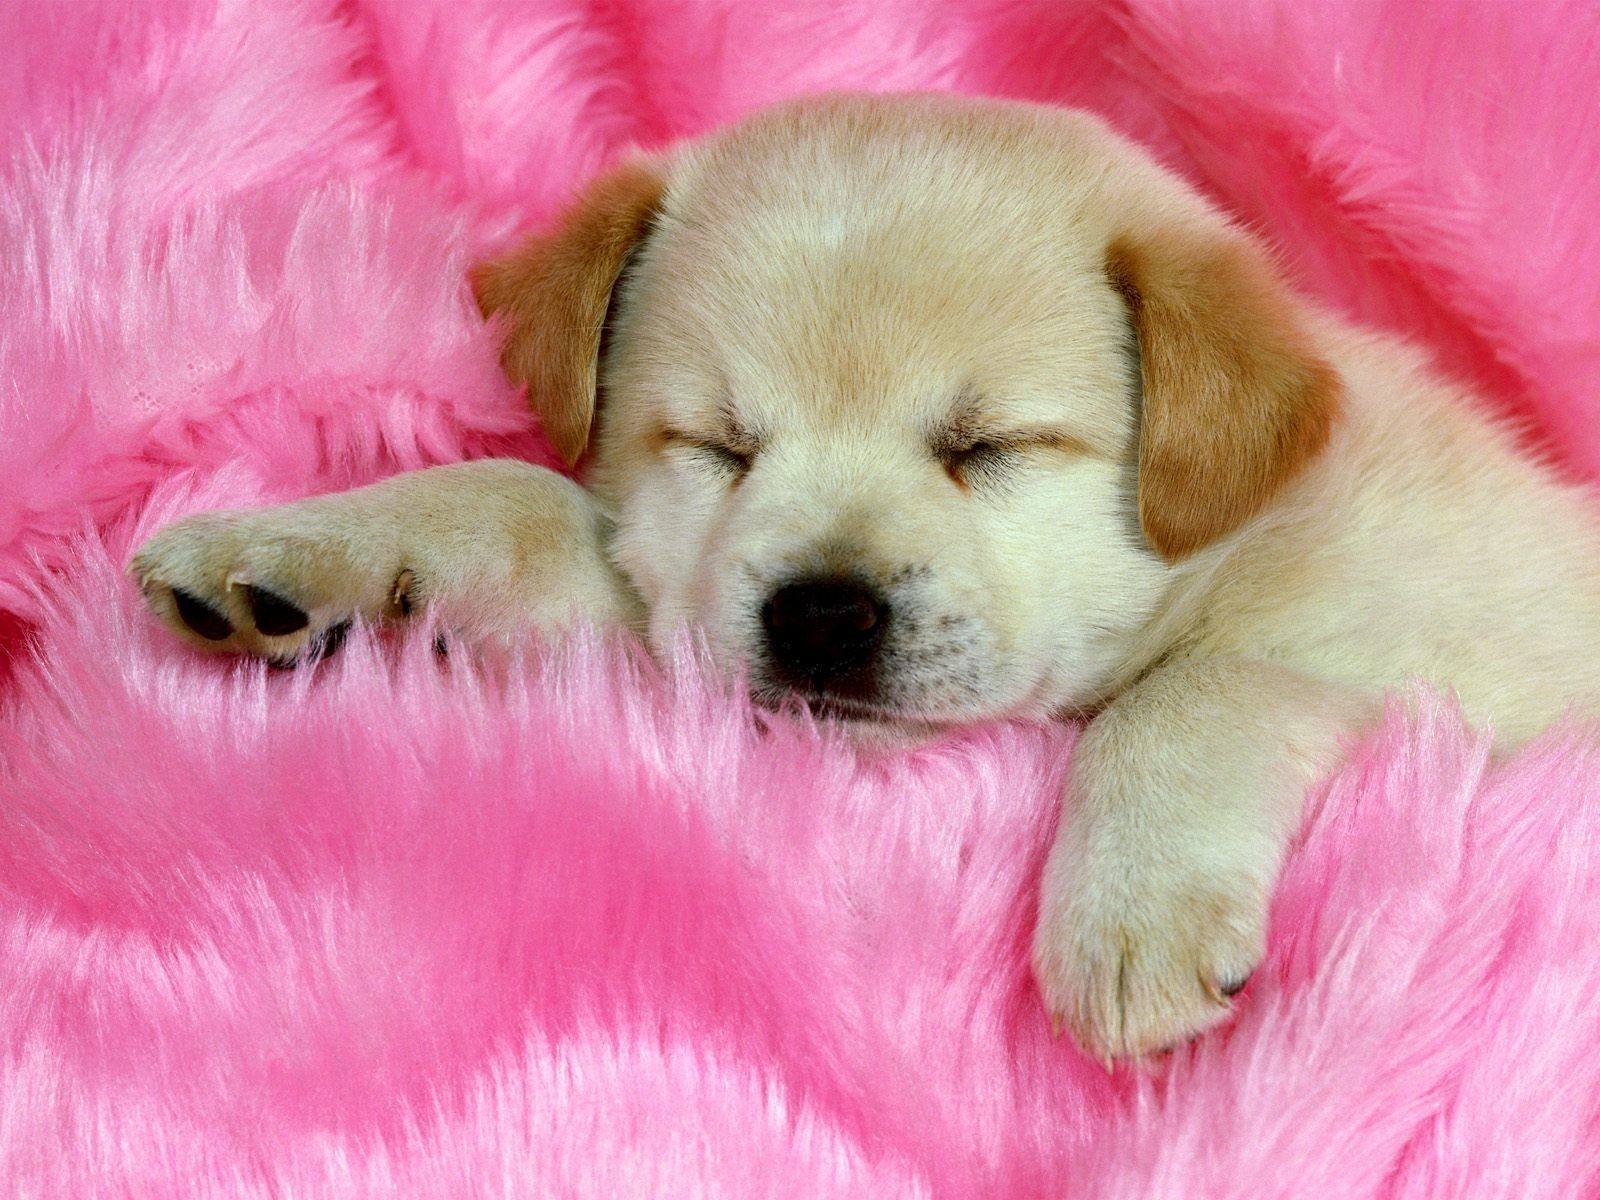 Cute Sleeping Dogs And Babies Wallpaper Cute Dog Wallpaper Cute Puppy Wallpaper Sleeping Puppies